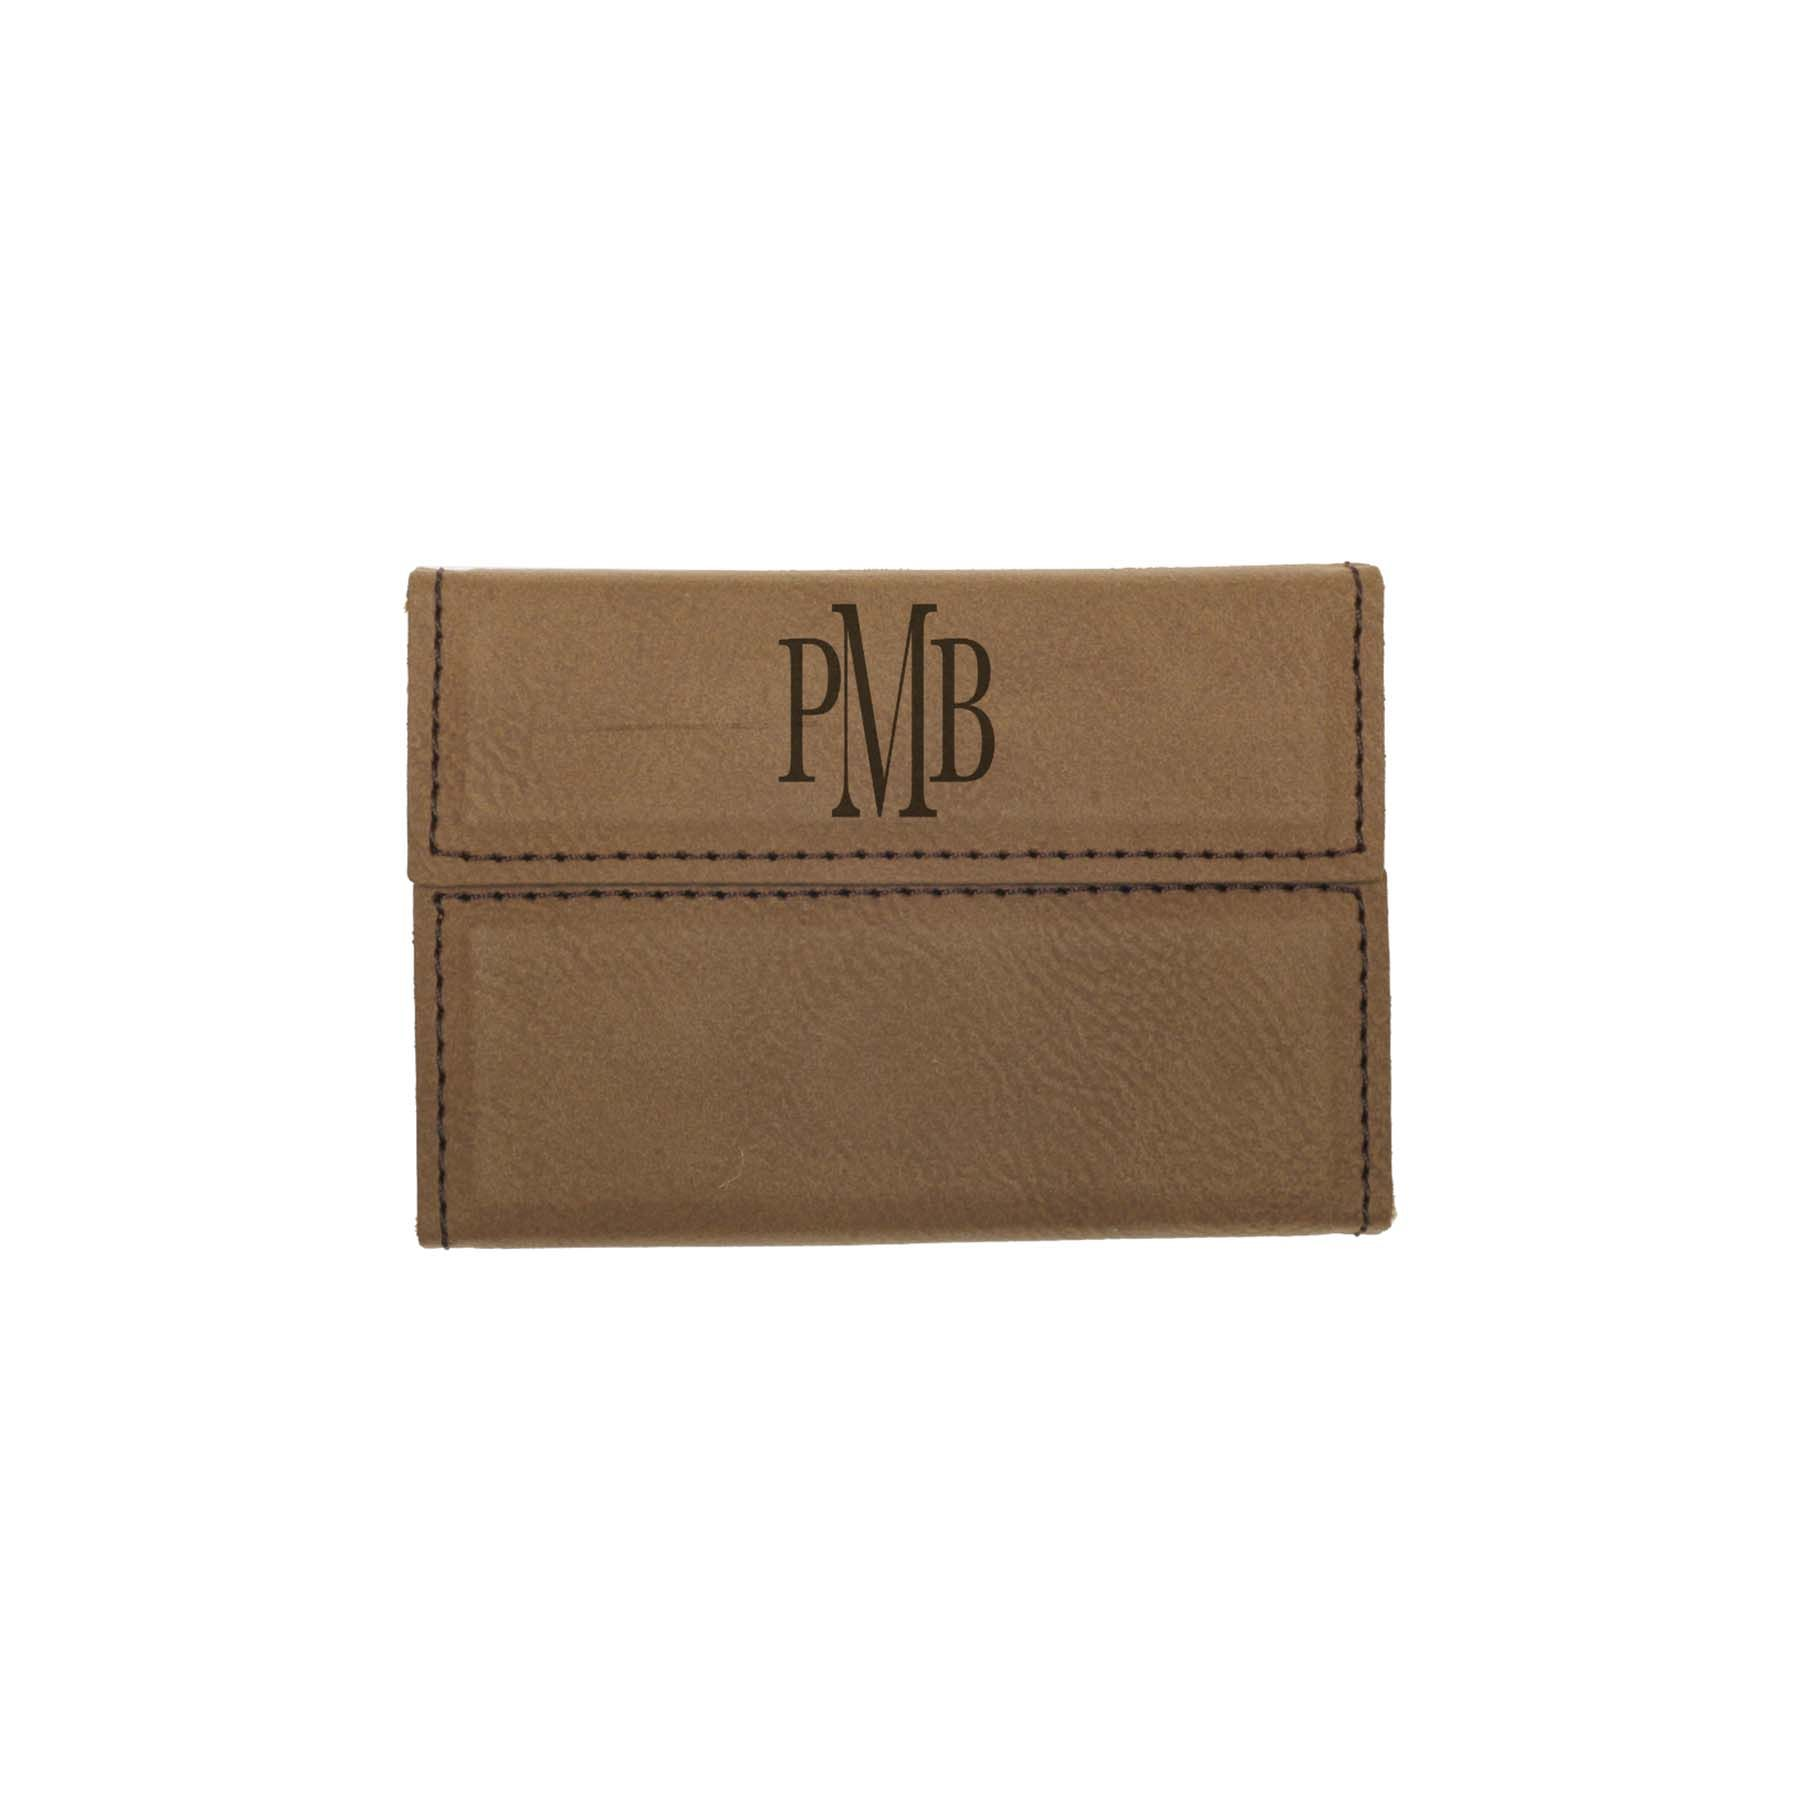 These classy engraved leatherette business card holders are great ...